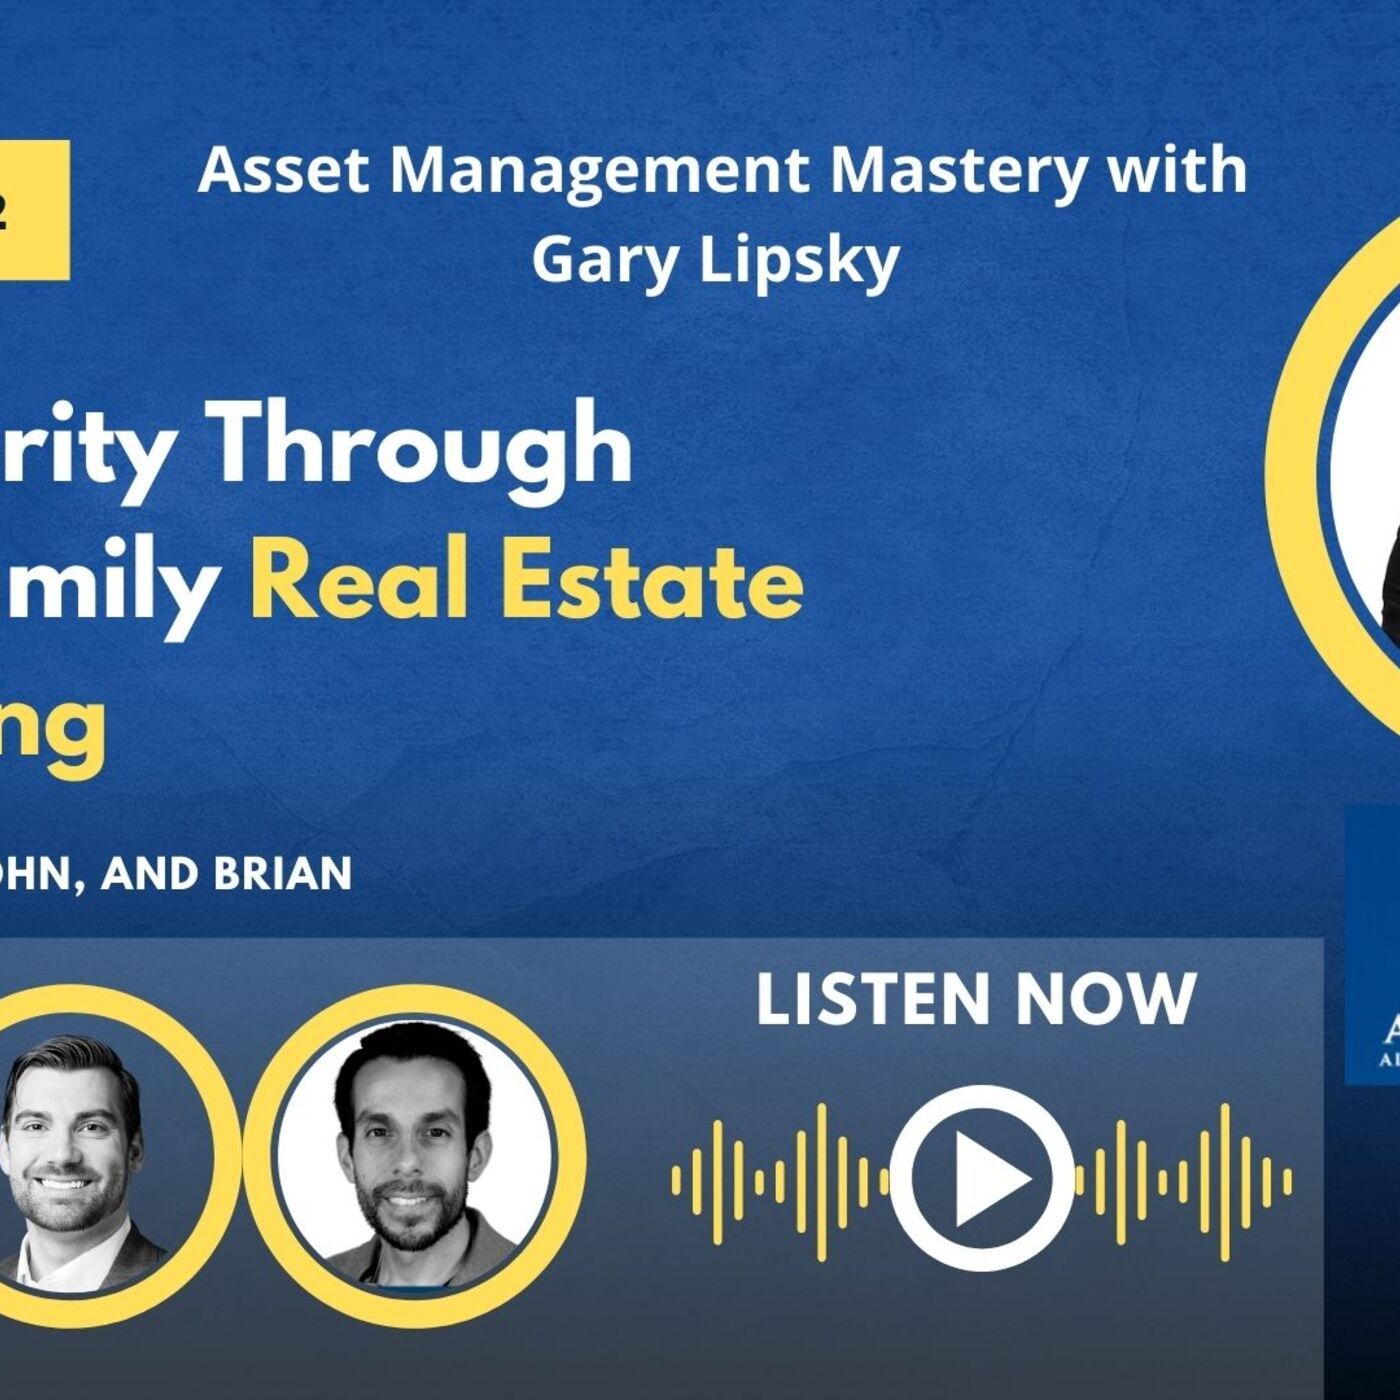 Asset Management Mastery with Gary Lipsky